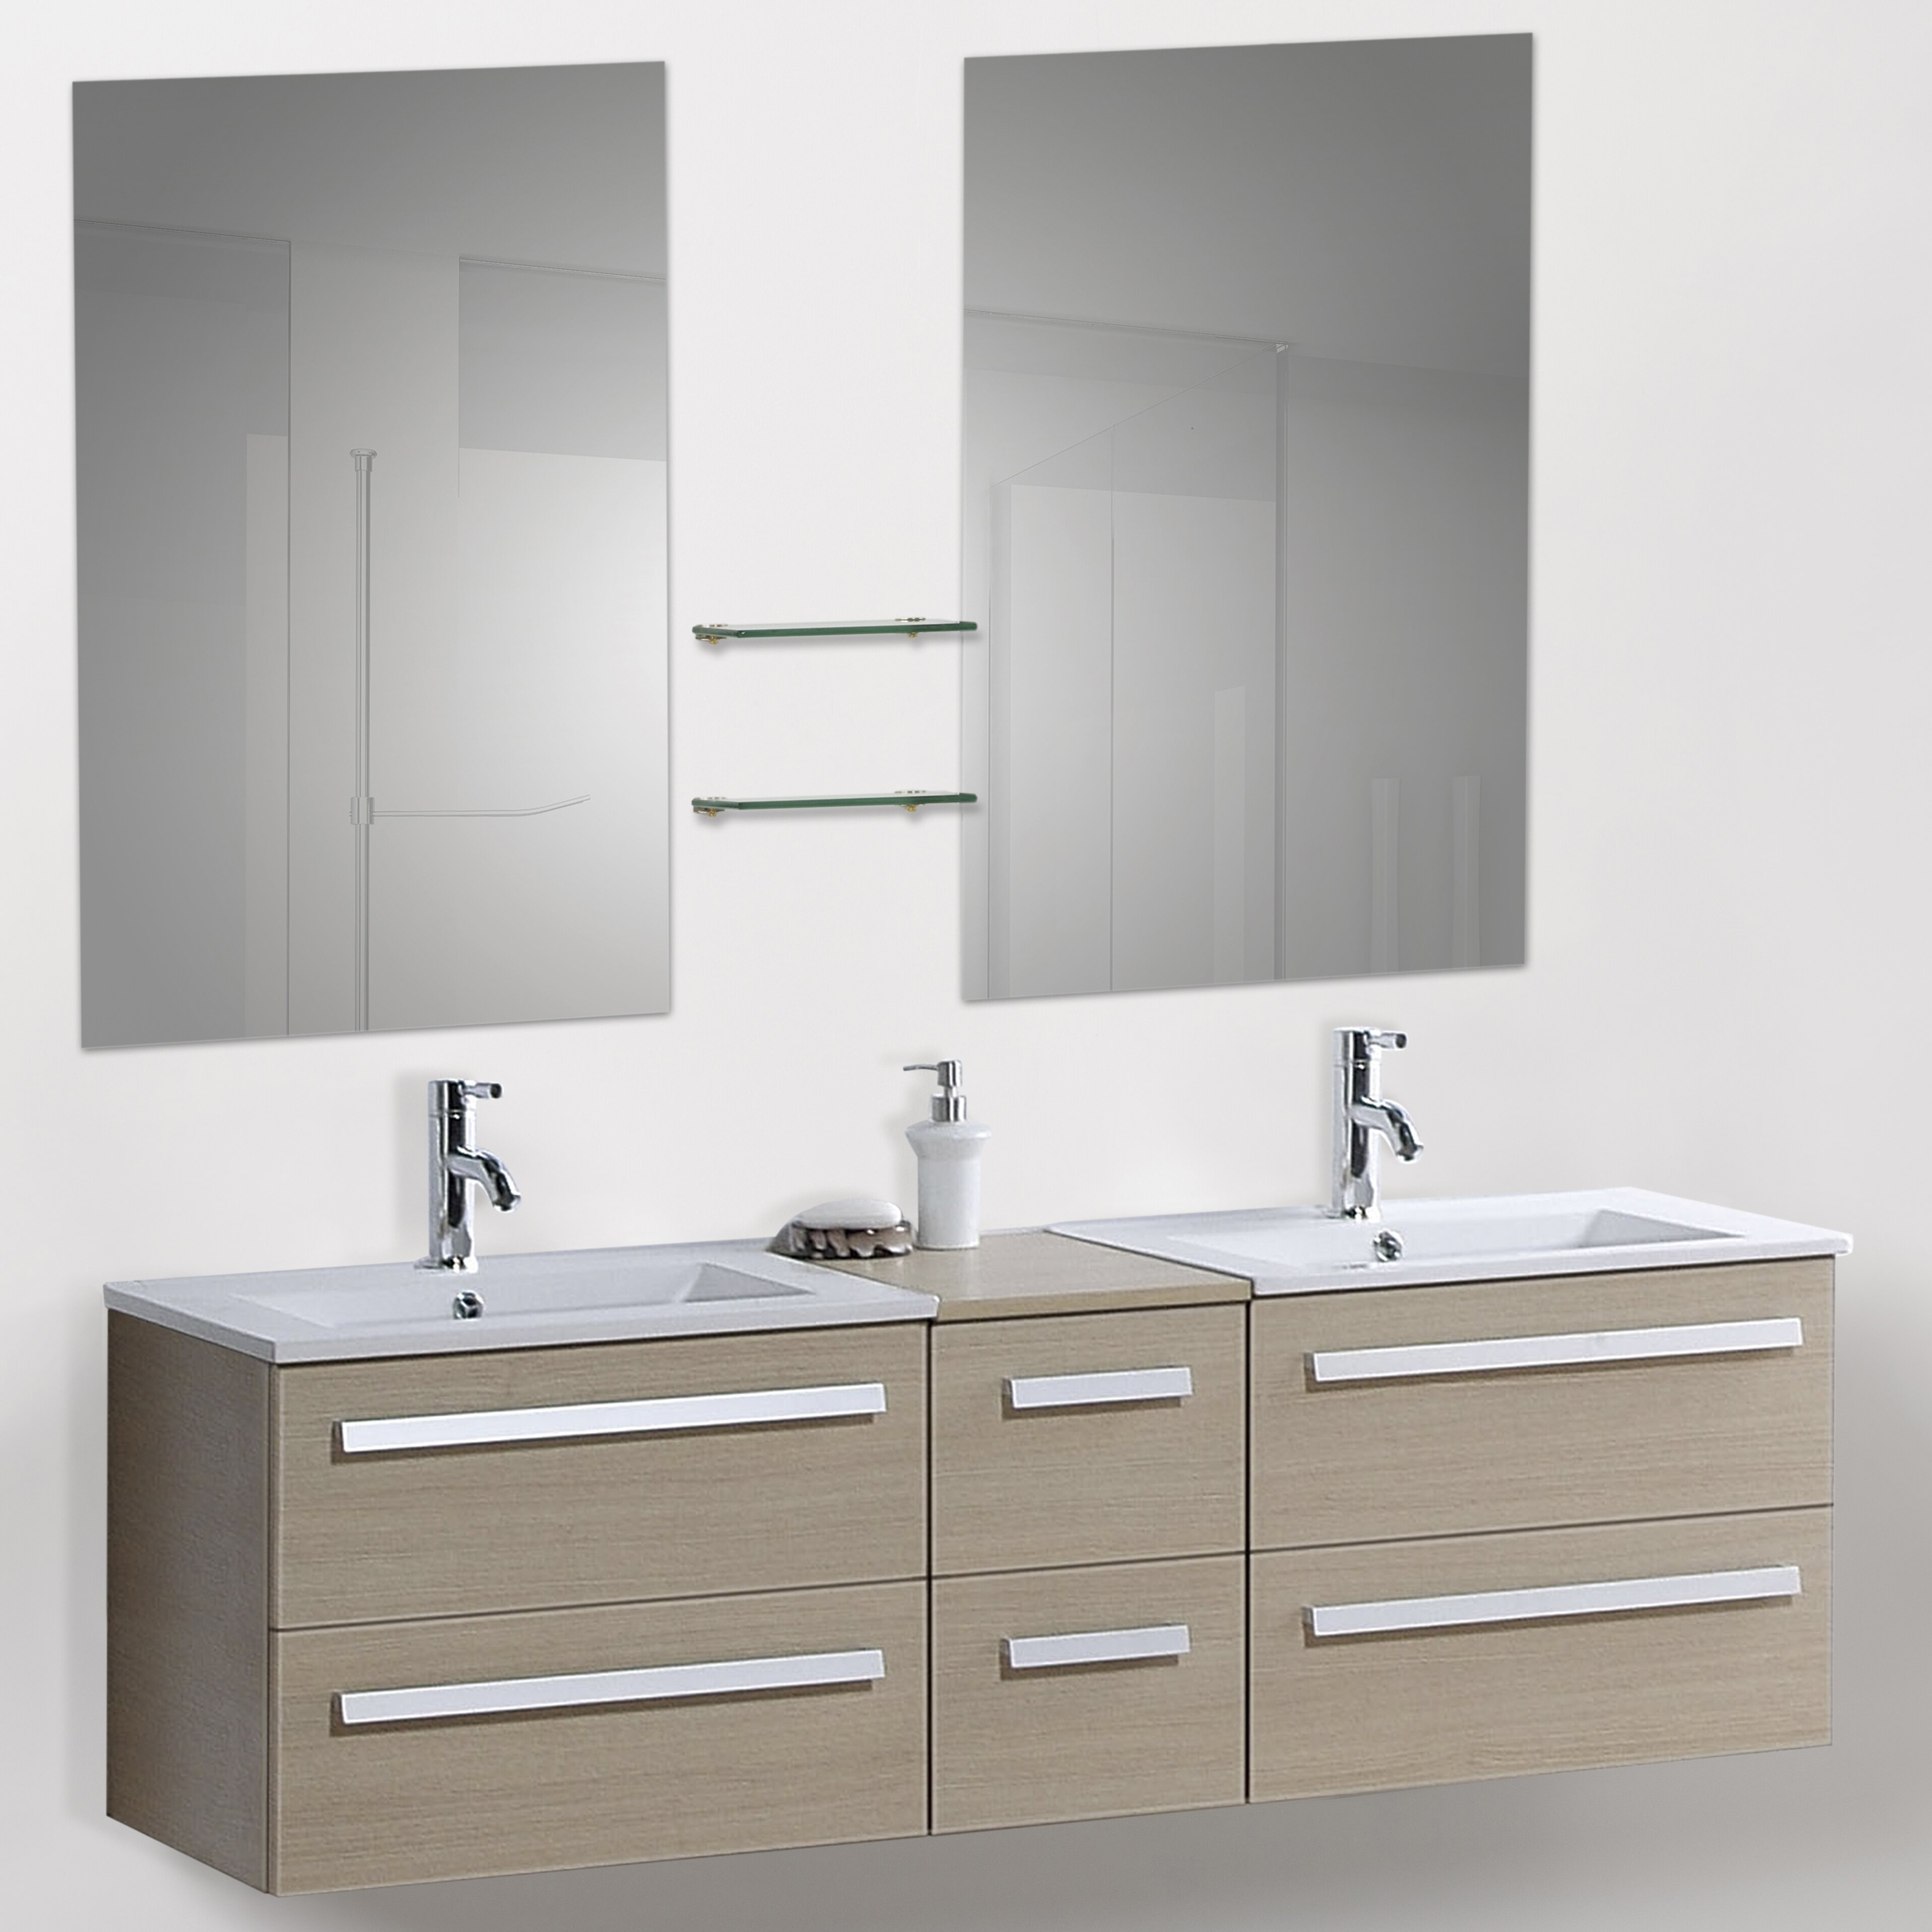 60quot; Modern Double Bathroom Vanity Set with Mirrors amp; Reviews  W